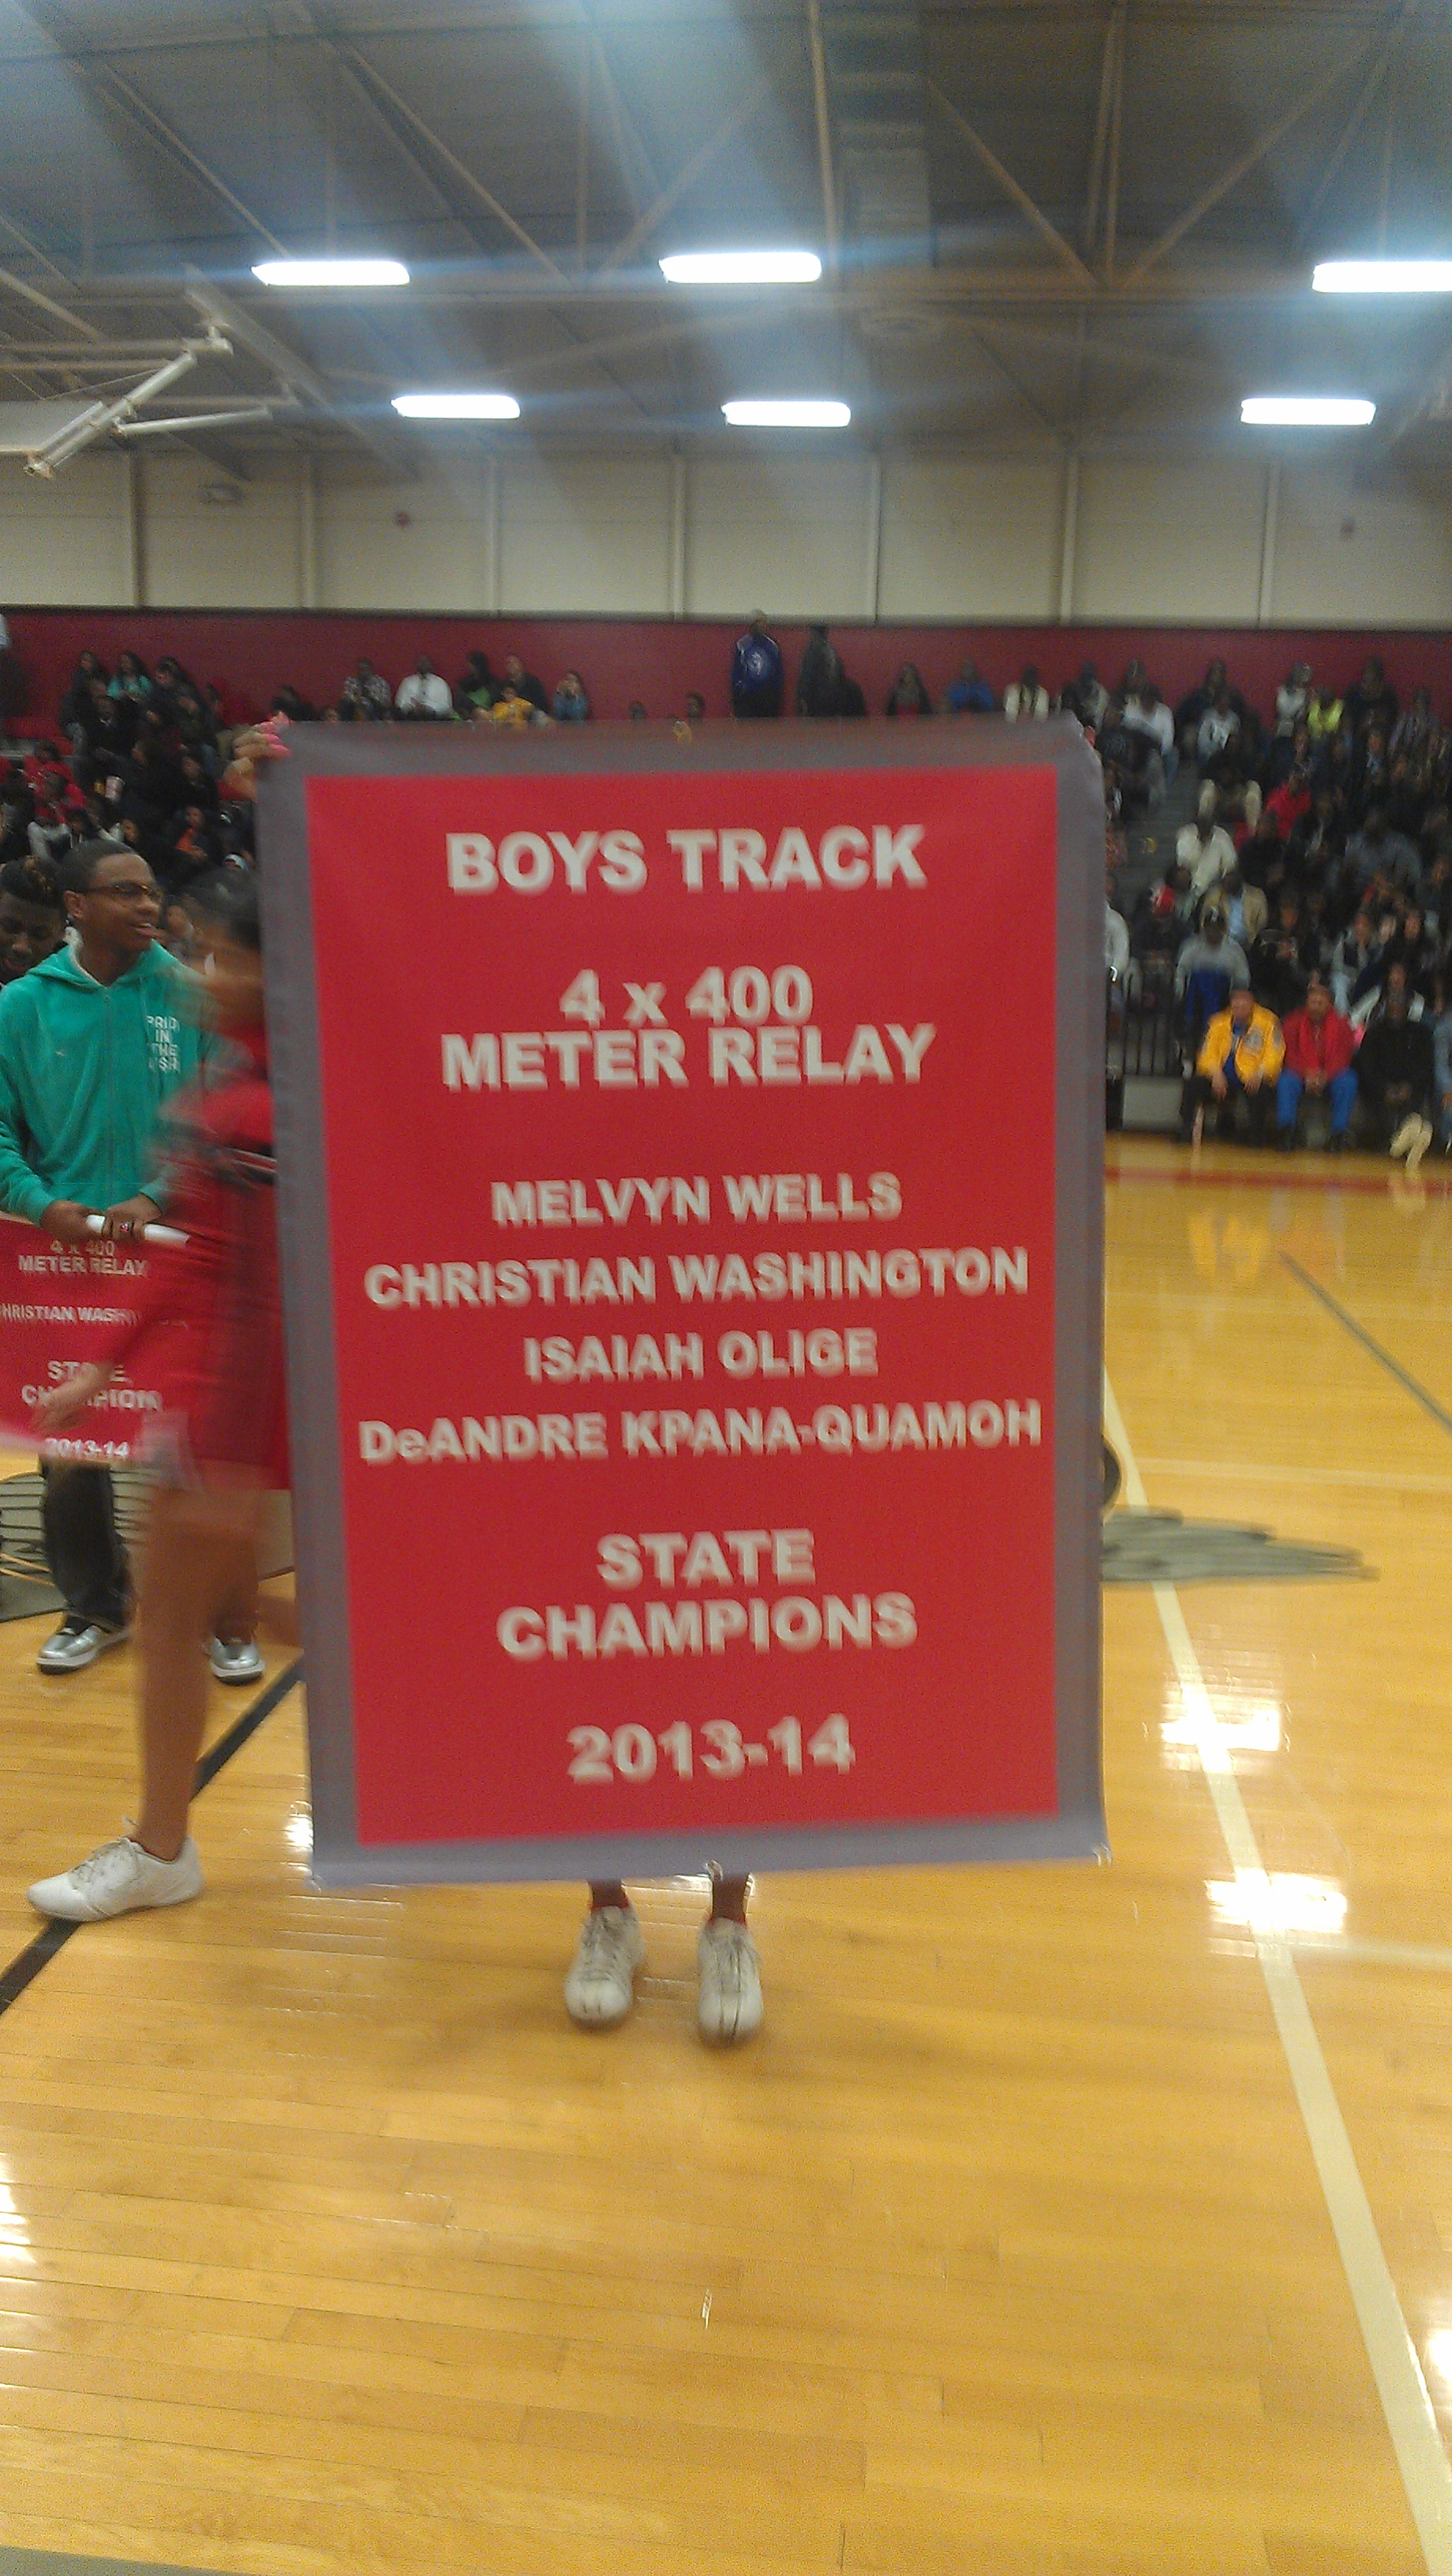 Banner ceremony at East Nashville for state champion relay team.